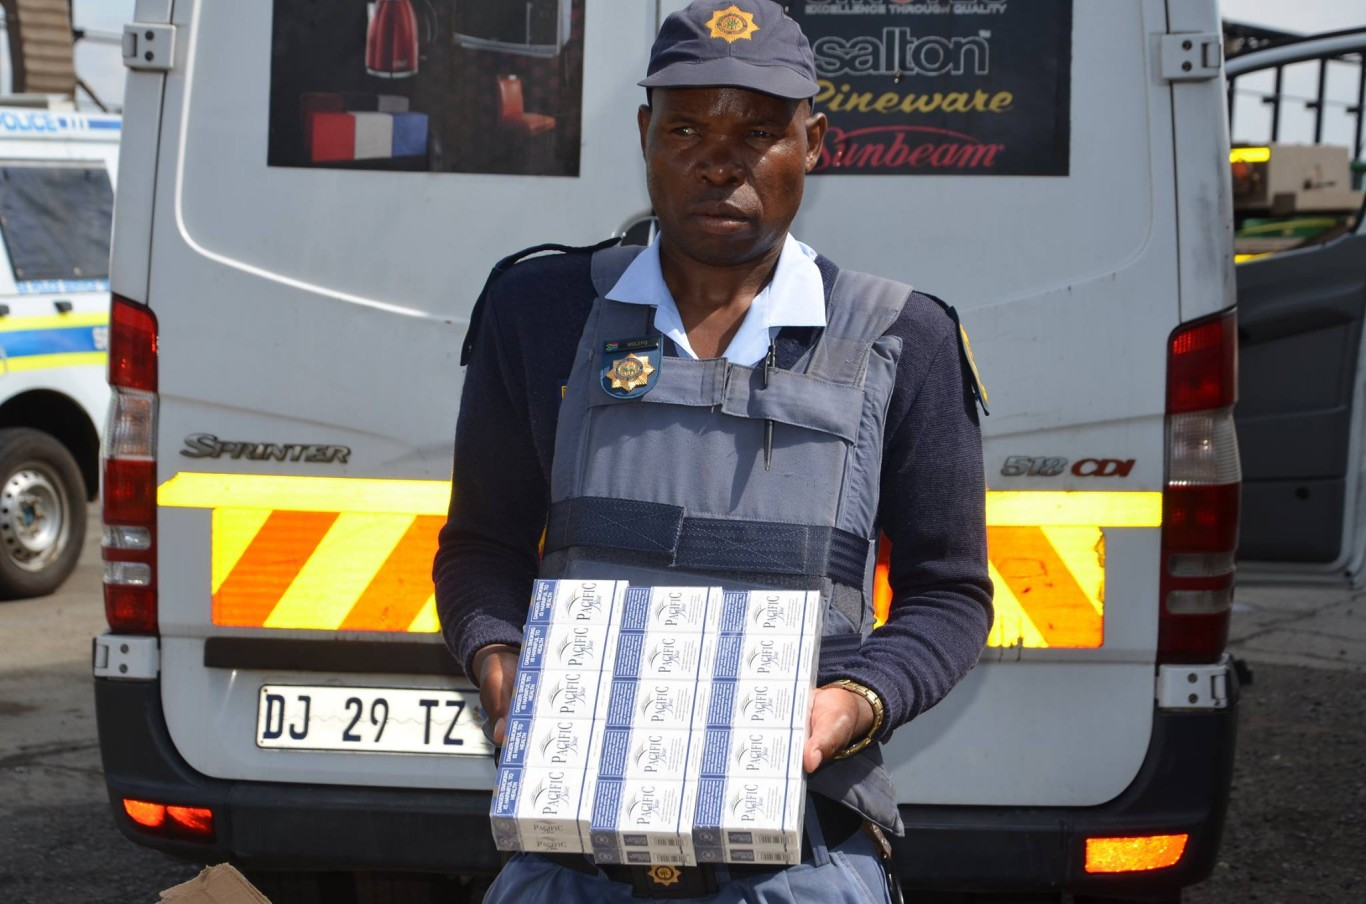 Police recover illicit cigarettes hidden in transported cargo of bananas on truck